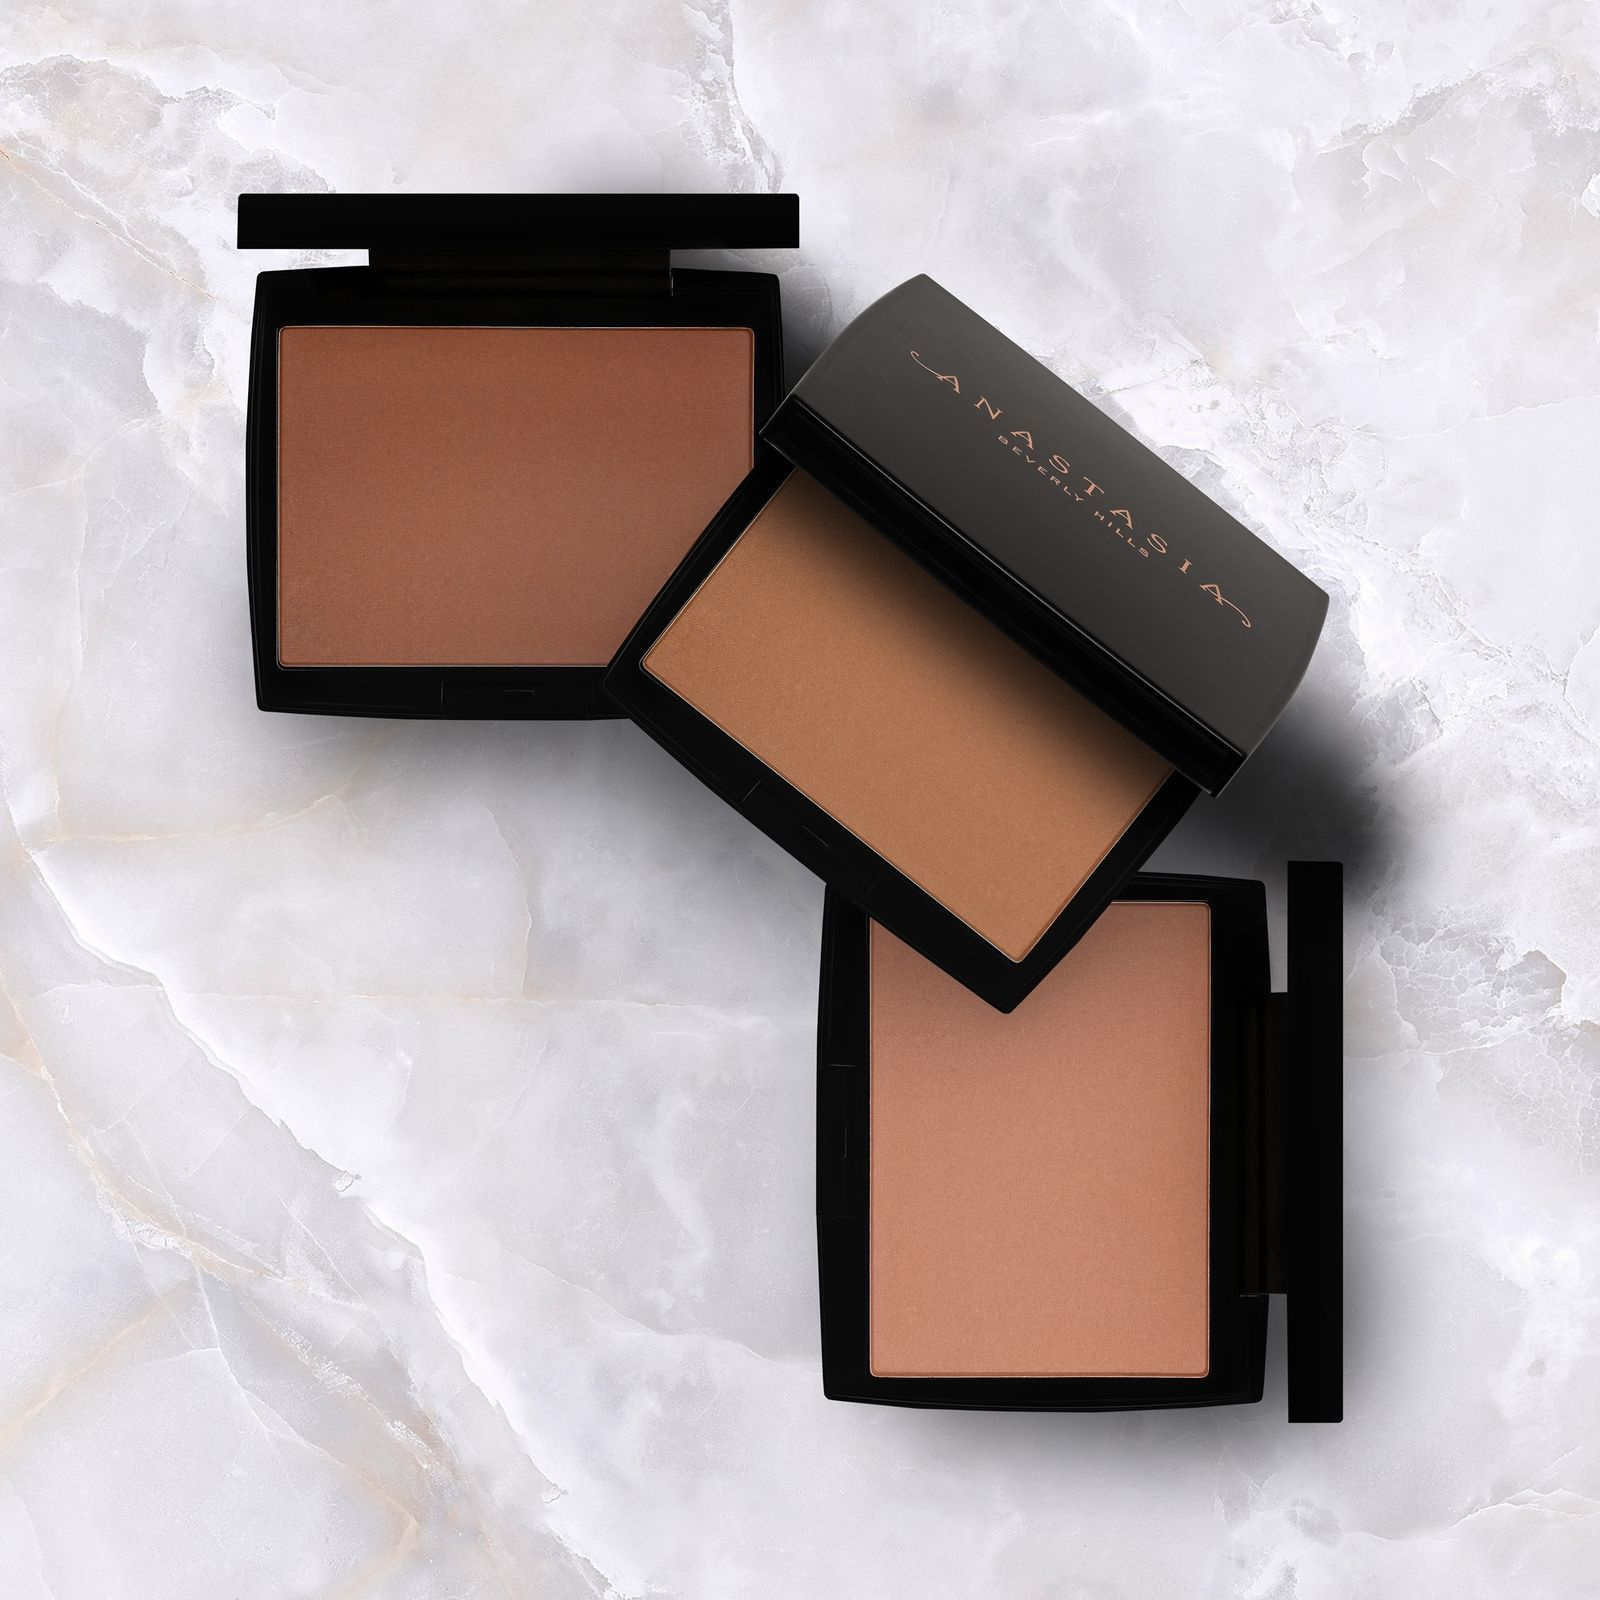 Anastasia Beverly Hills Is Launching Its First Collection of Powder Bronzers